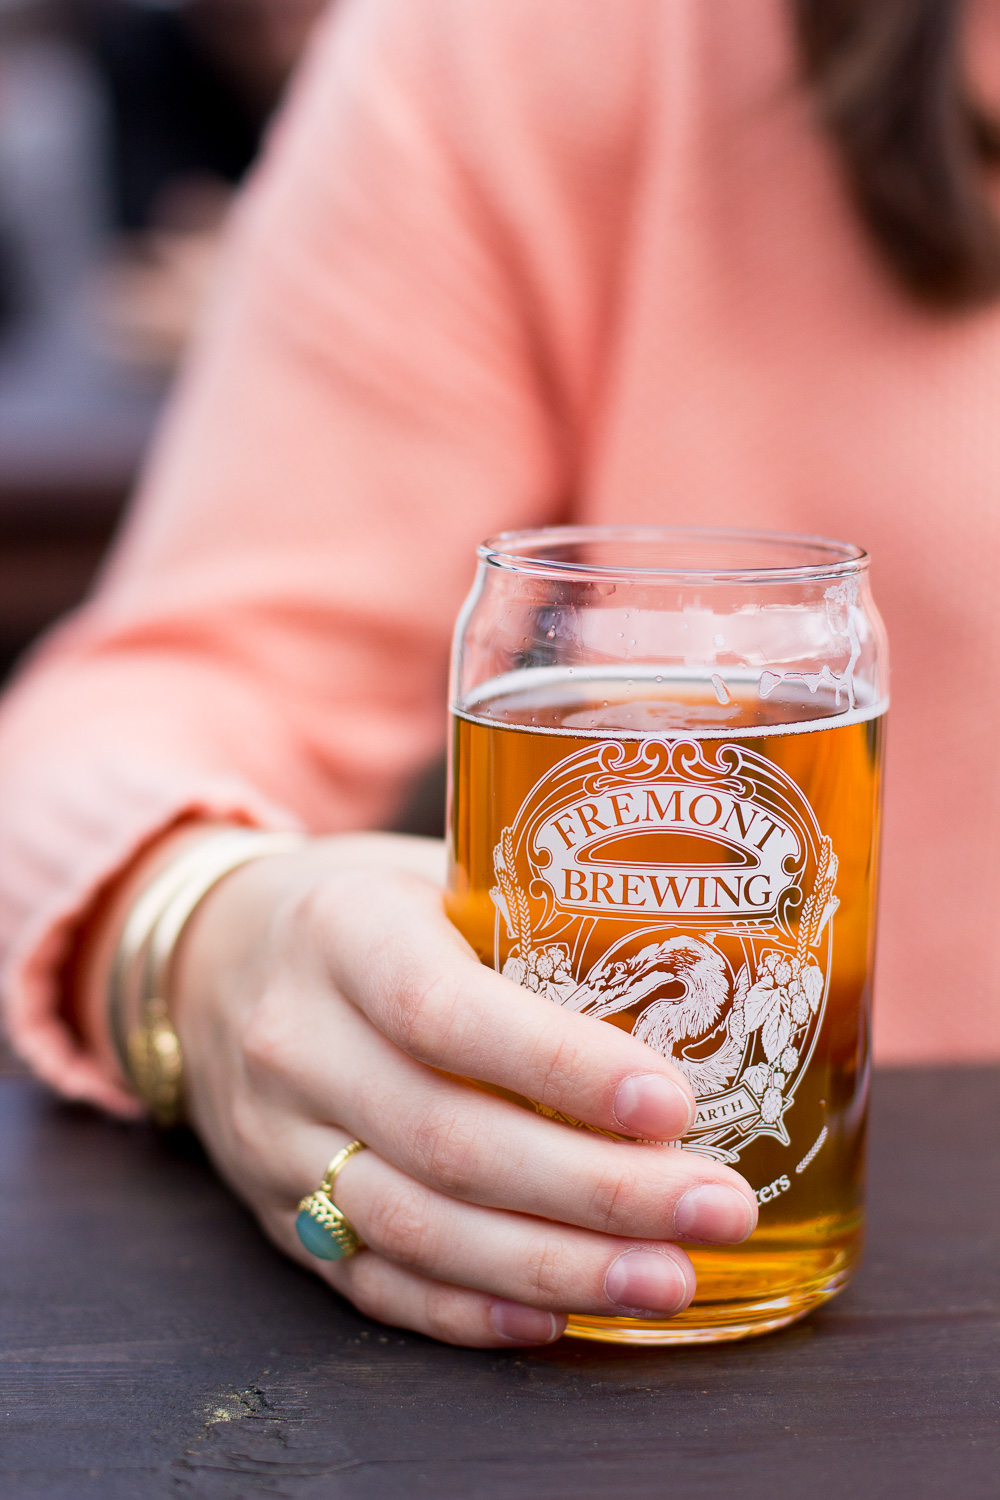 what to do in seattle, trip to seattle,  wandeleur, things to do in seattle, fremont brewing, outdoor patio brewery